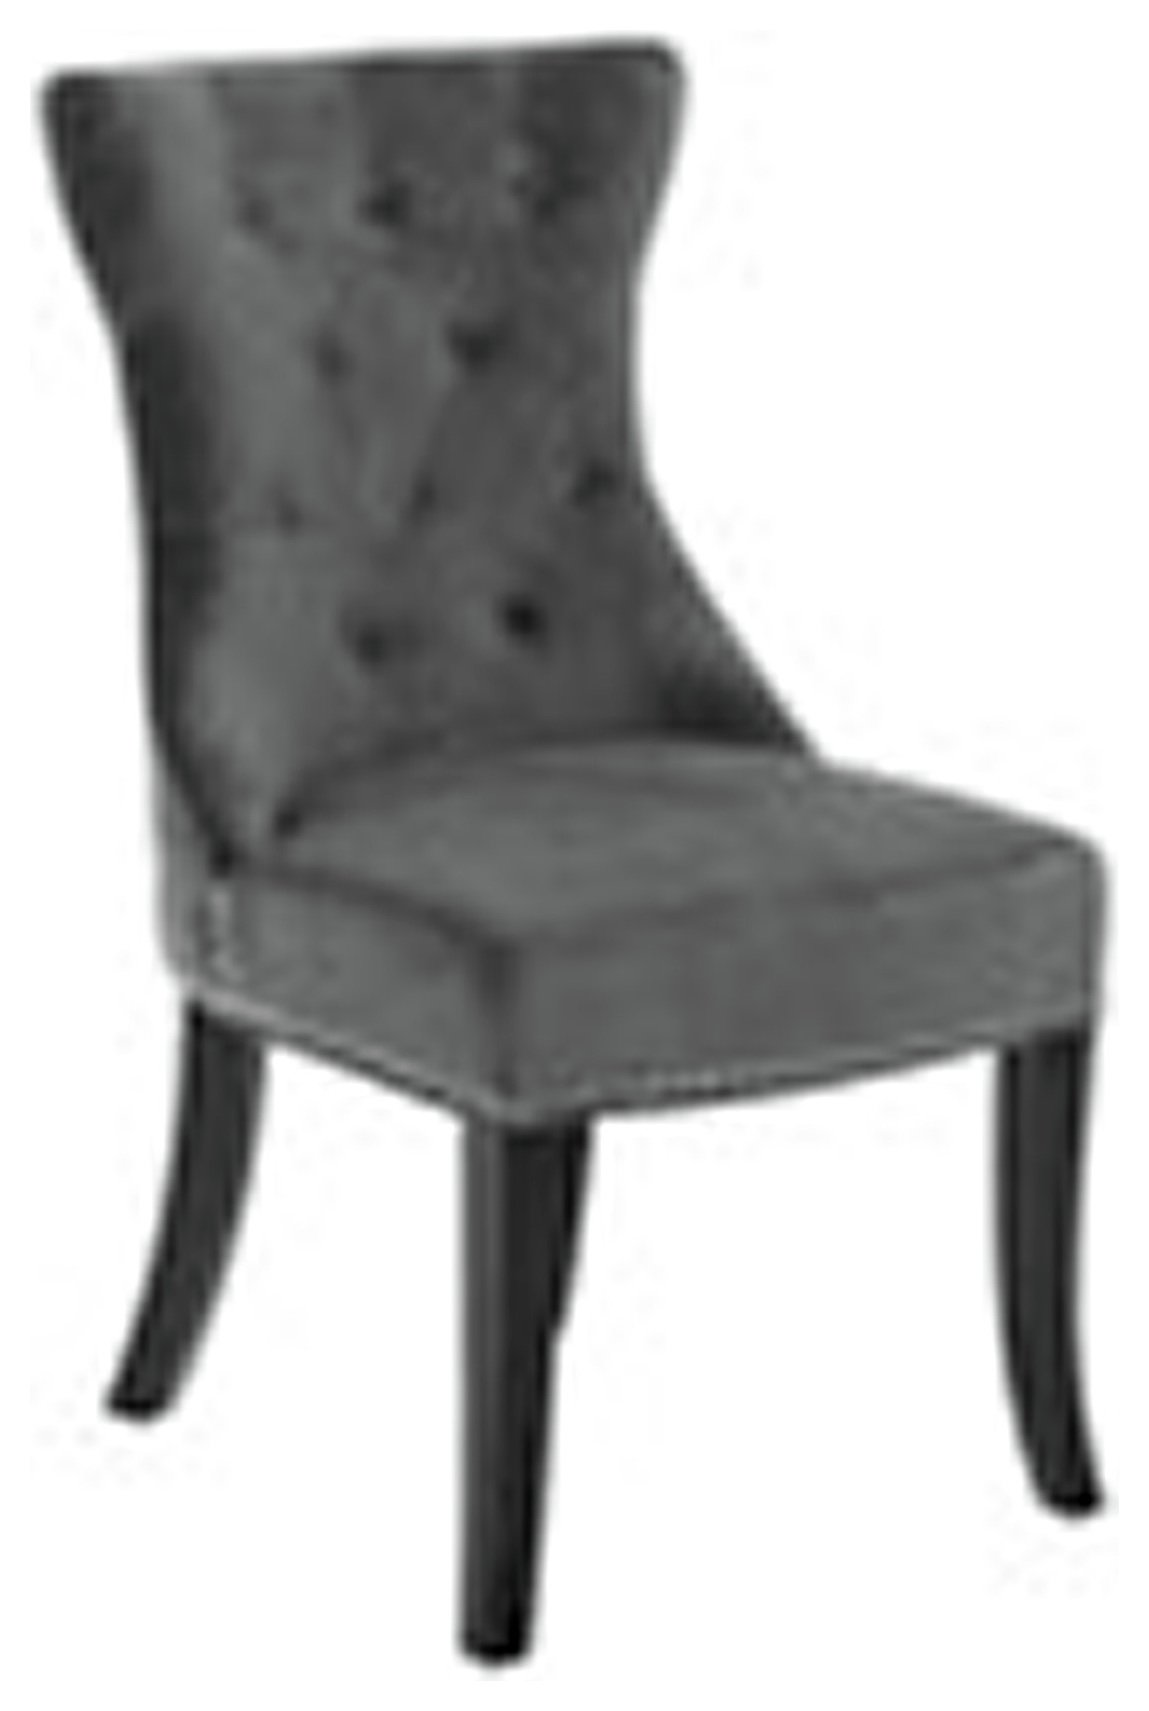 Premier Housewares Regents Park Dining Chair - Grey at Argos from Premier housewares